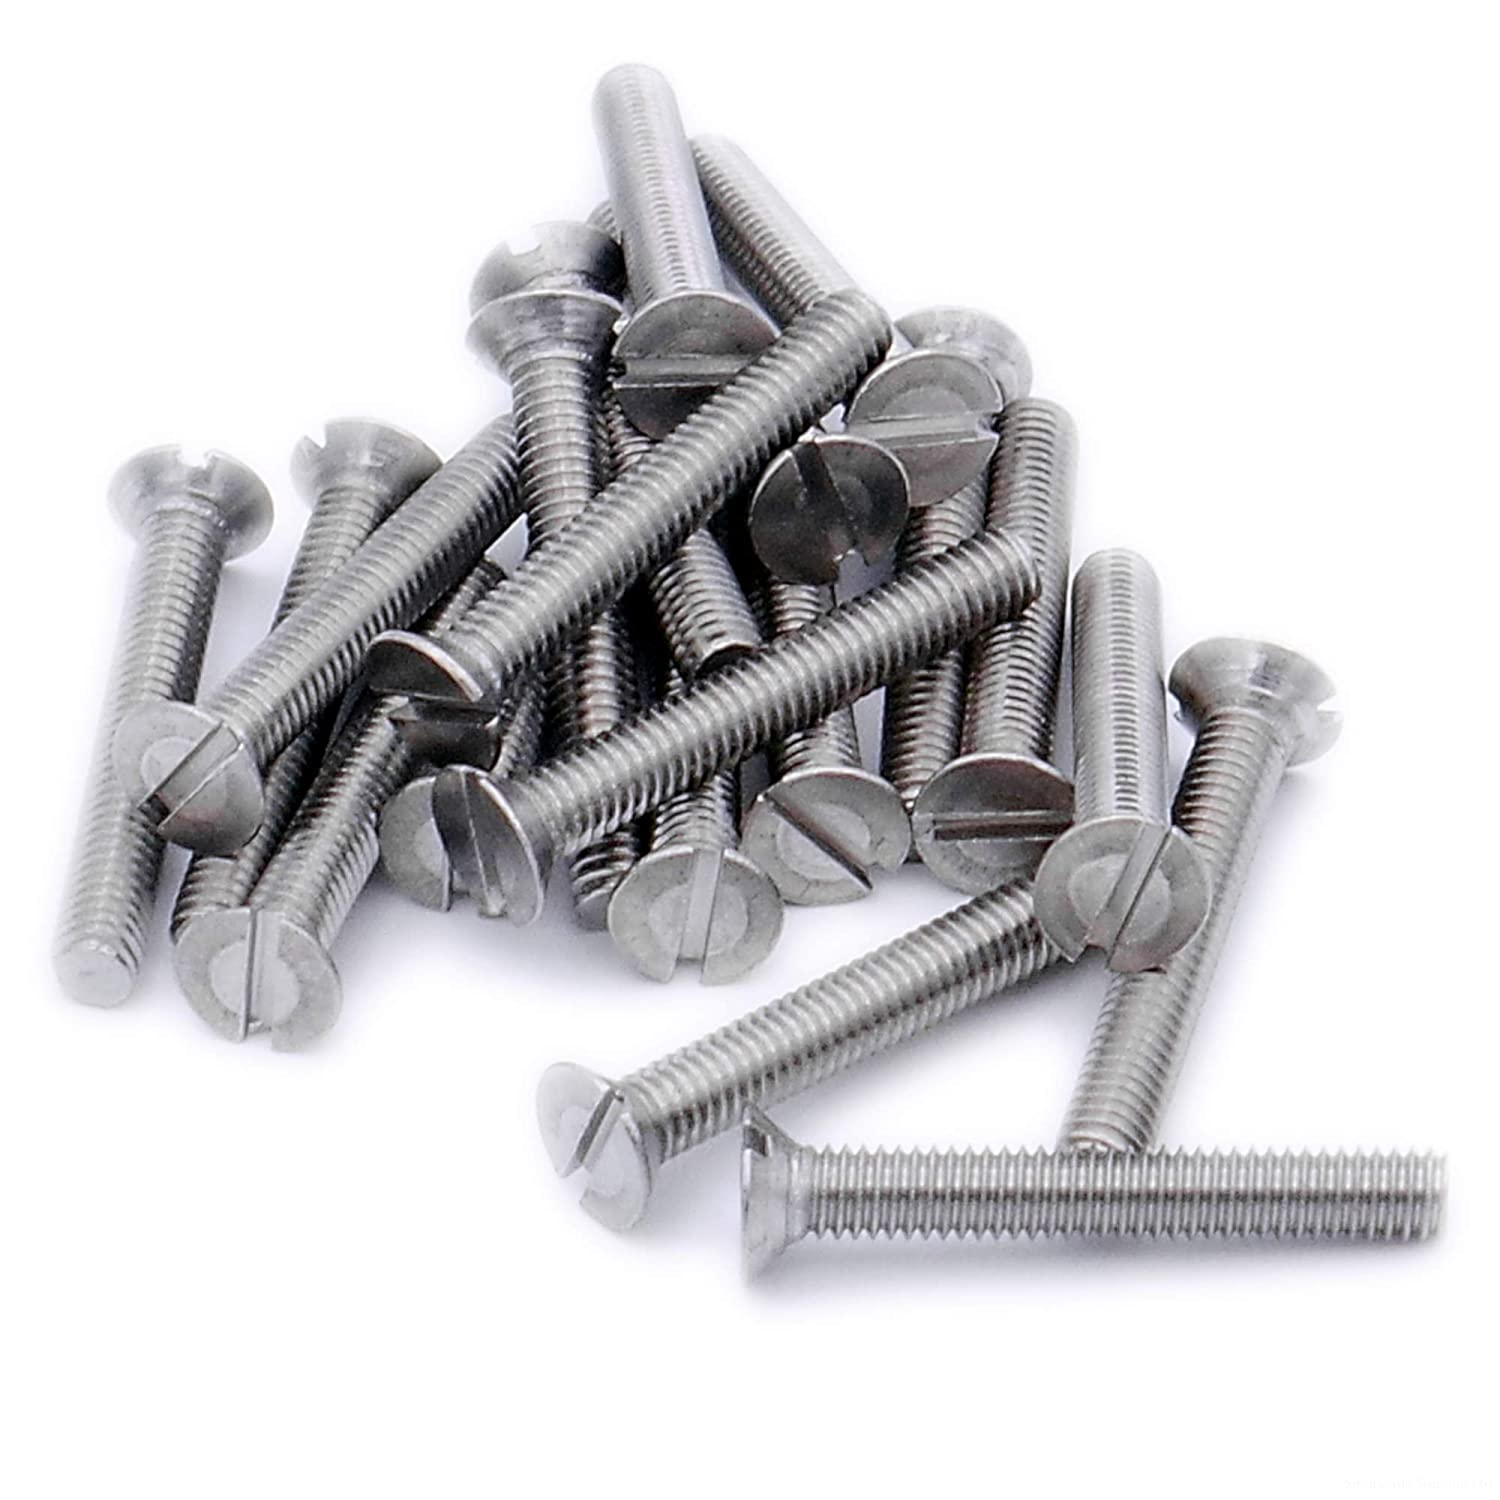 M3 x 6mm Stainless Slotted Csk Screws  10 pack